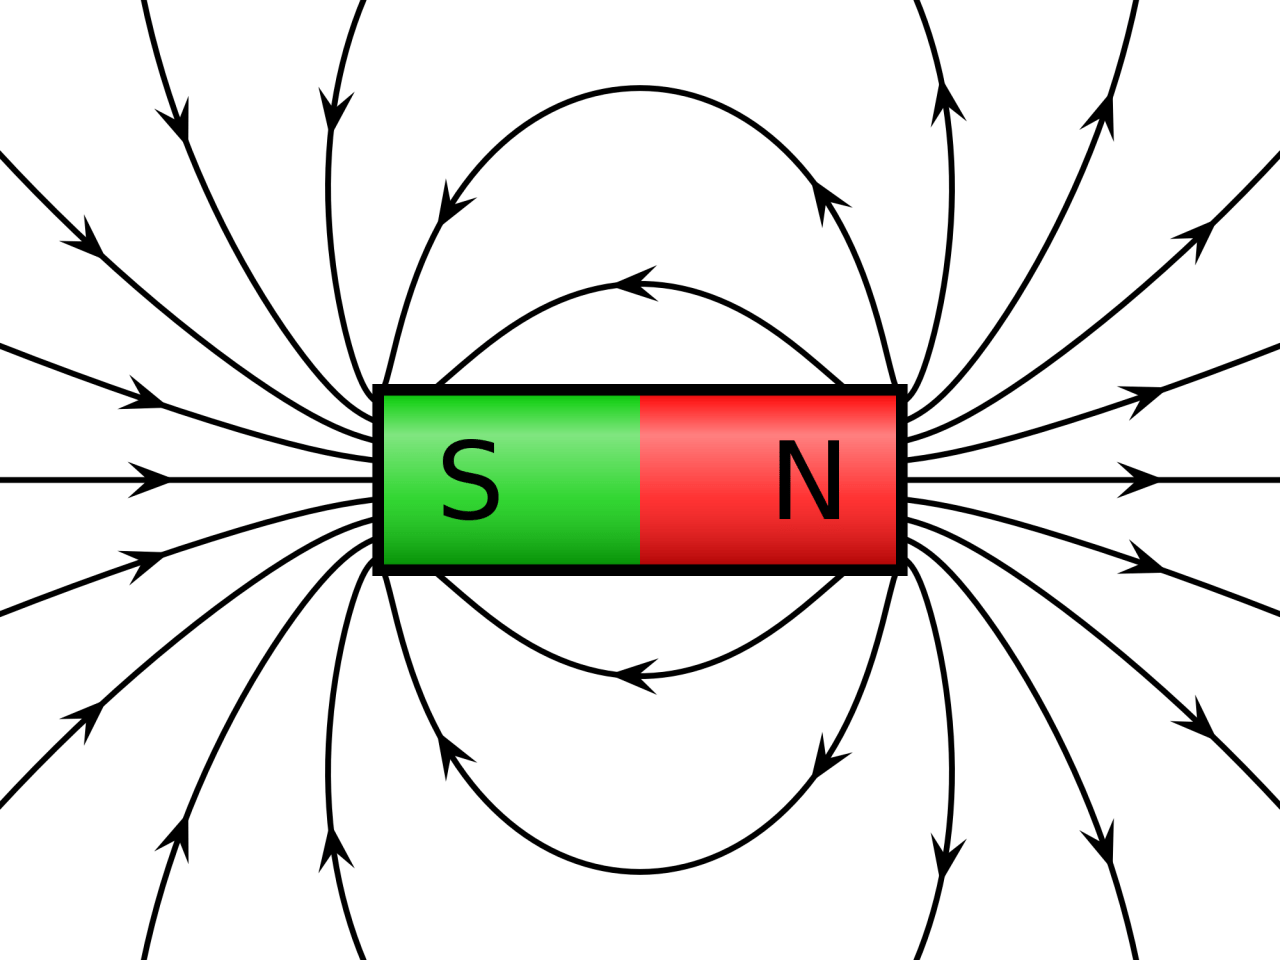 VFPt_cylindrical_magnet_thumb.svg[1]